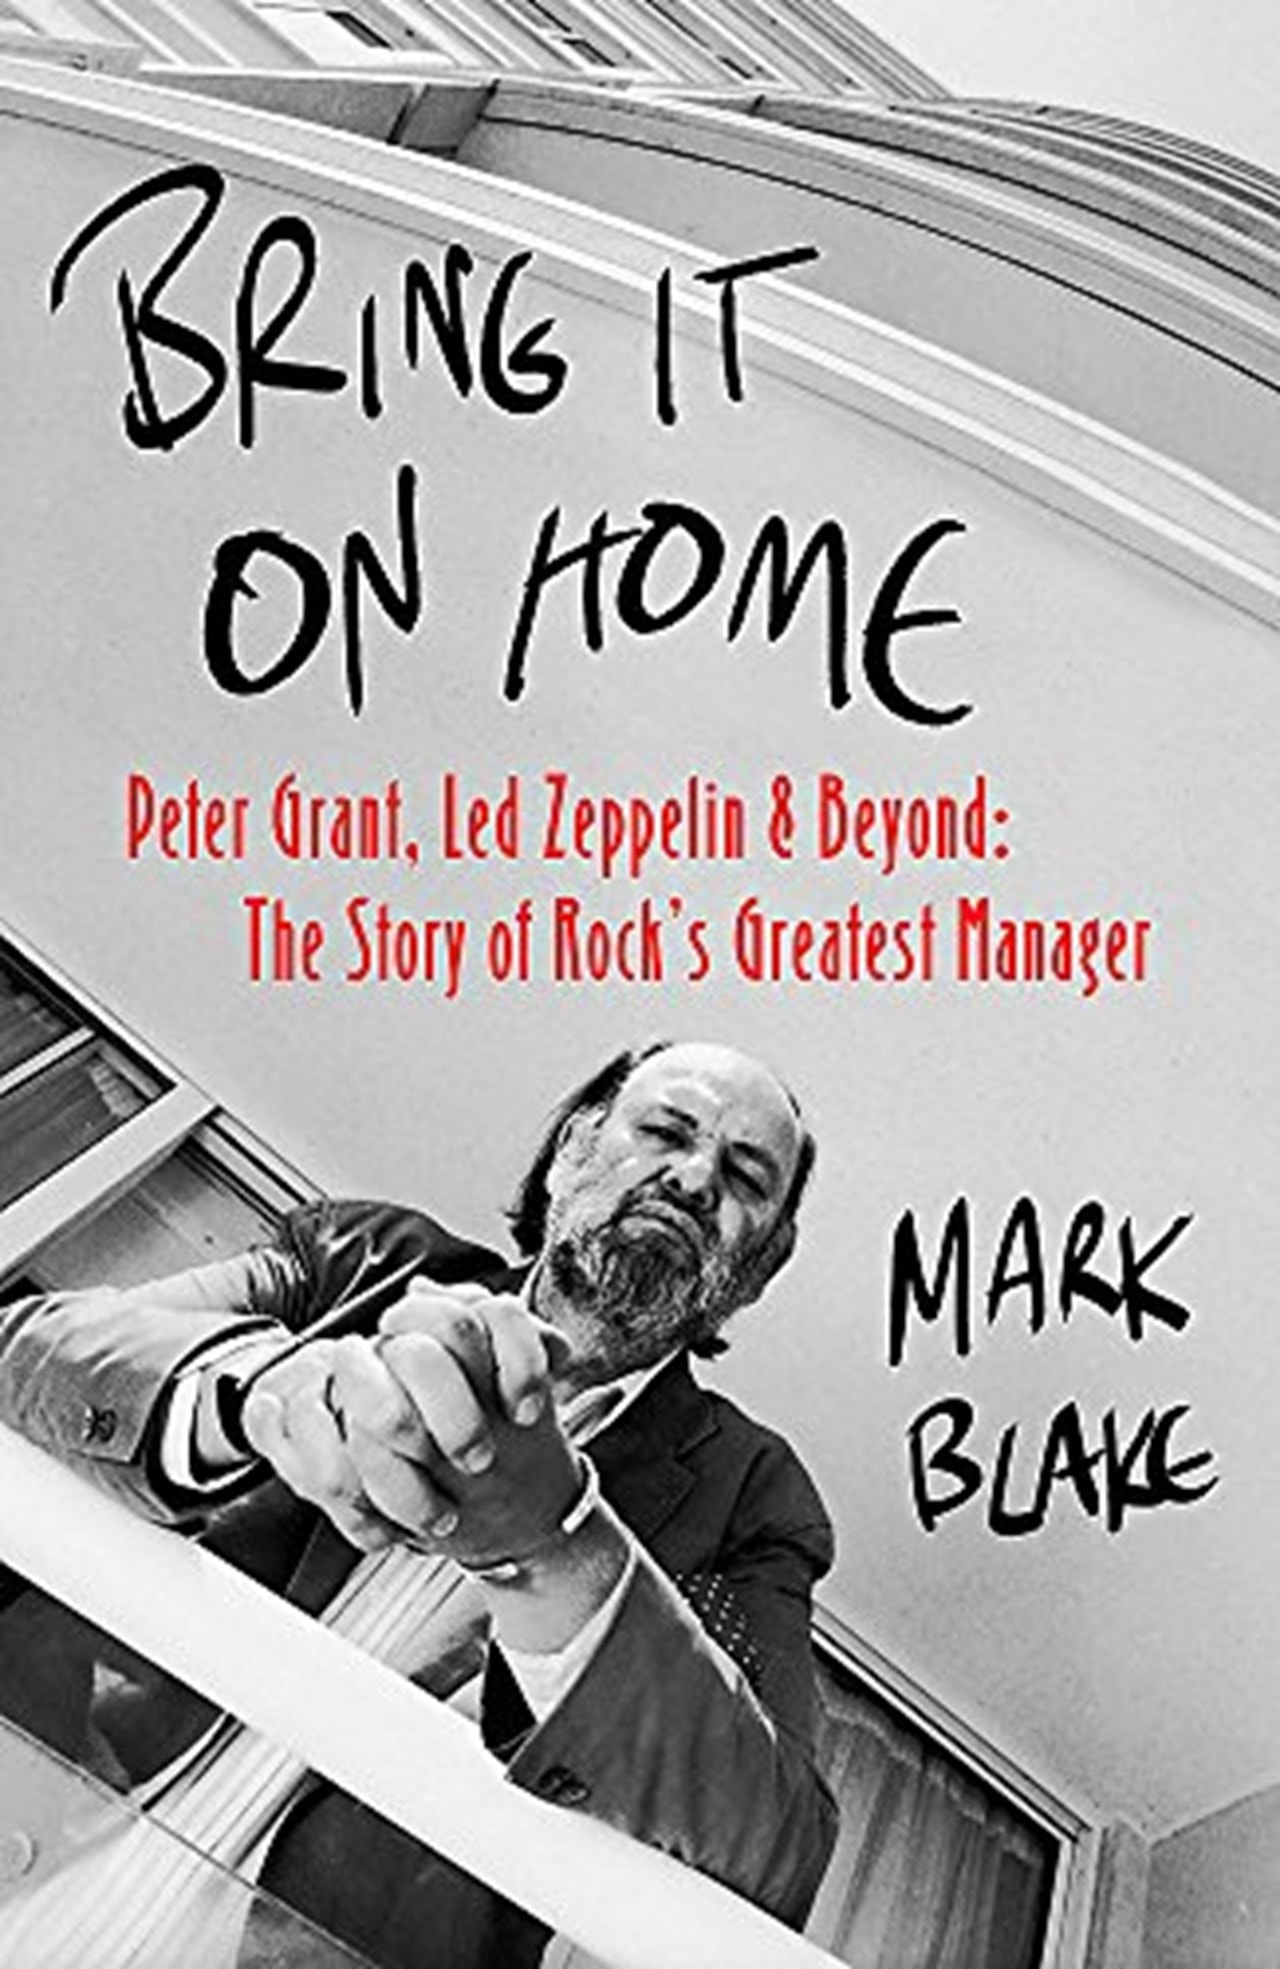 Bring It On Home: Peter Grant, Led Zeppelin & Beyond - 1